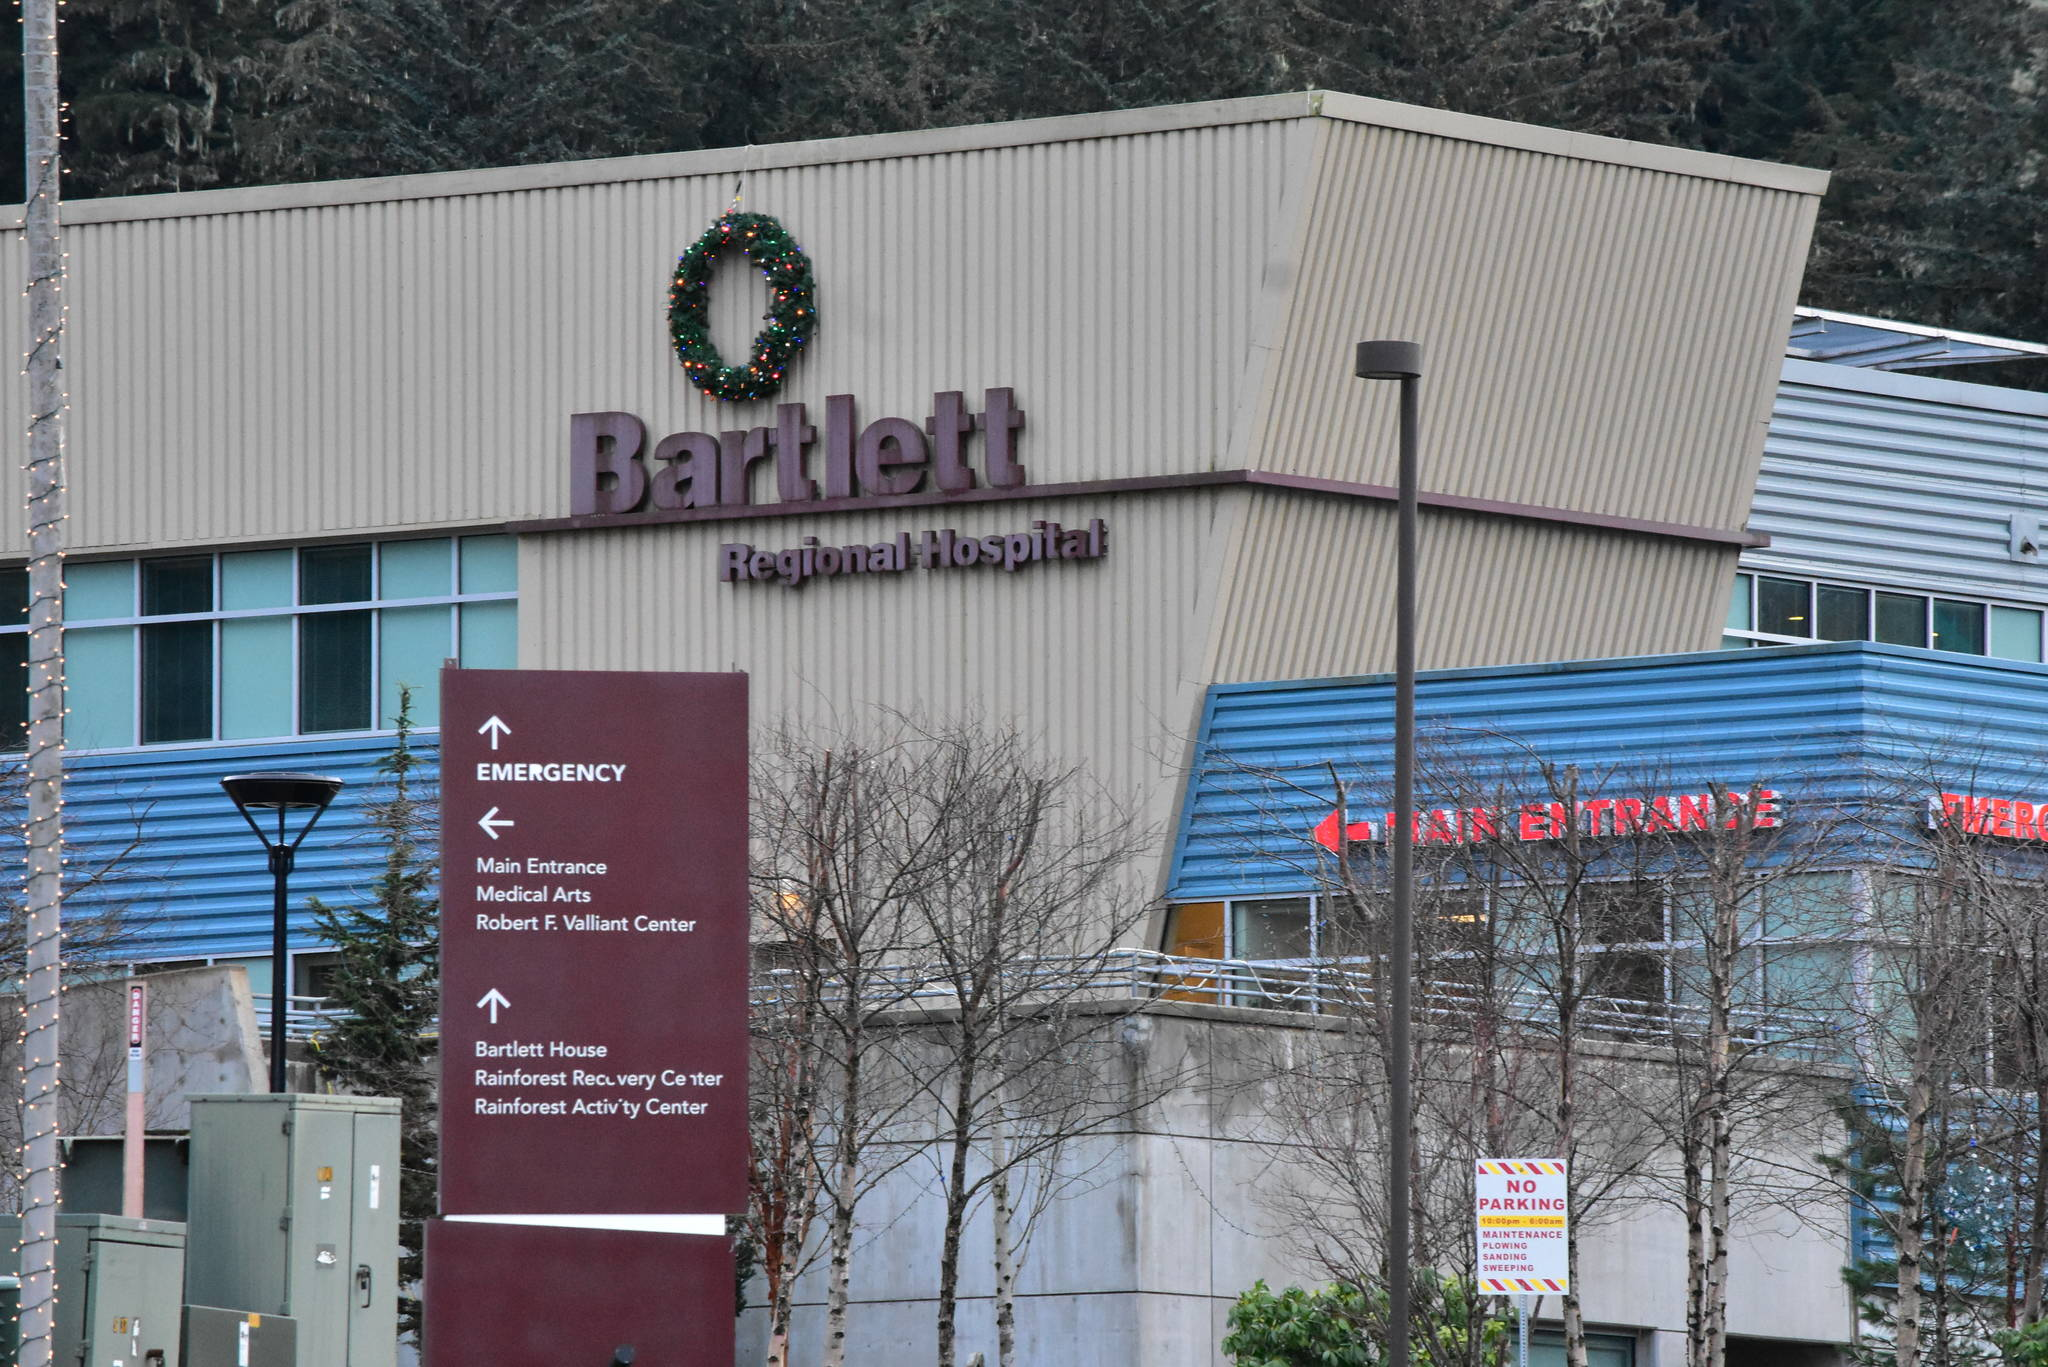 Staff at Bartlett Regional Hospital, seen here on Thursday, Dec. 10, 2020, will be among some of the first to receive a vaccine for COVID-19 once federal authorities give the go-ahead. (Peter Segall / Juneau Empire File)